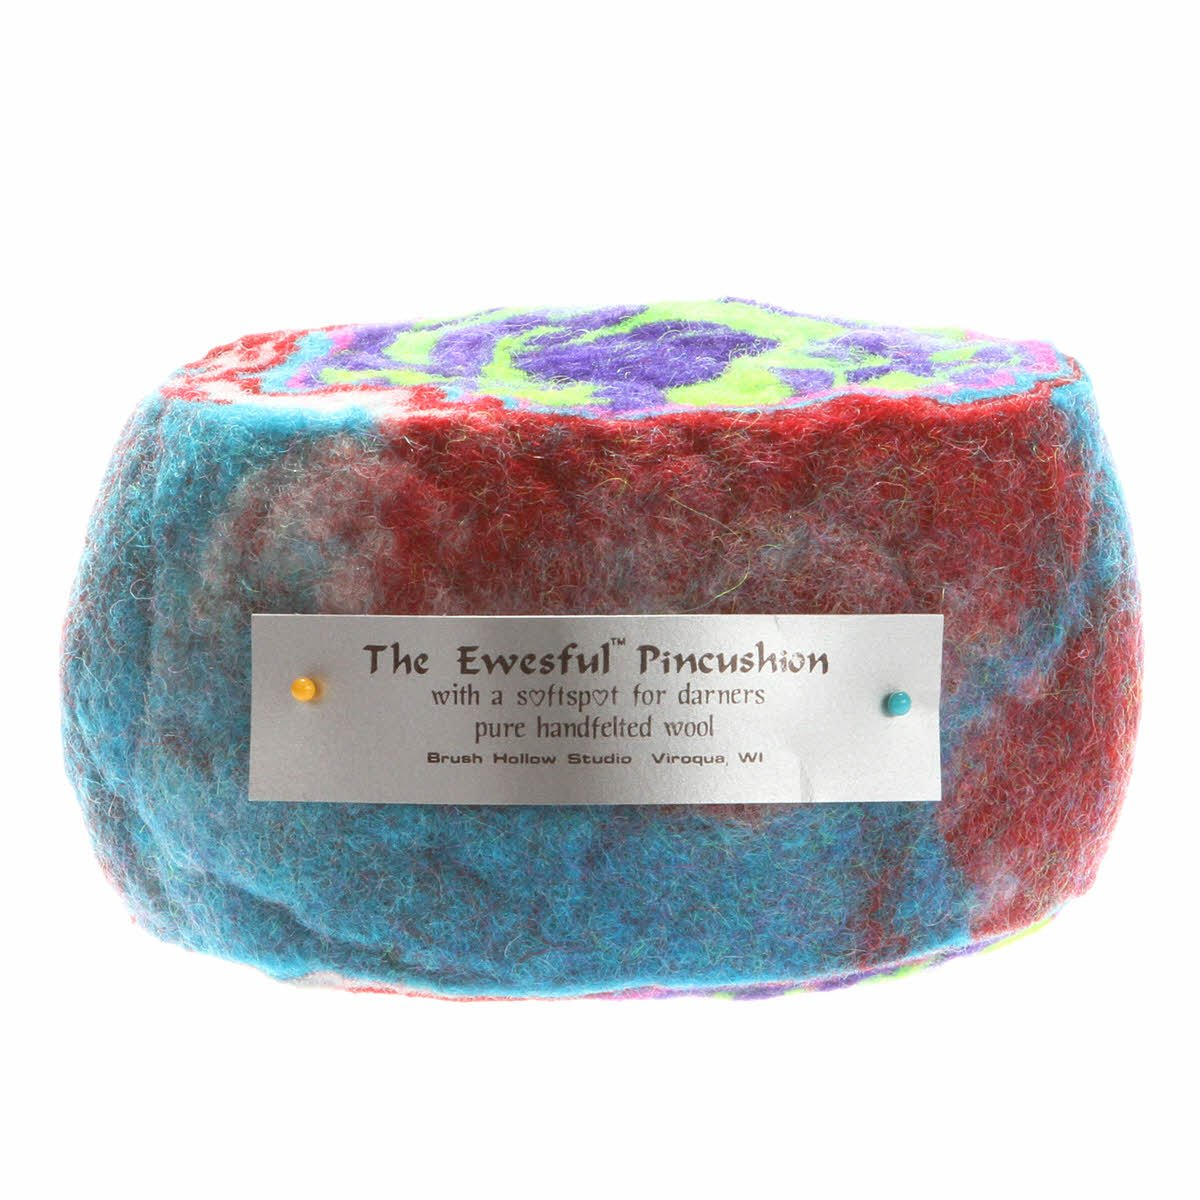 Ewesful Original Pure Virgin Wool Pincushion